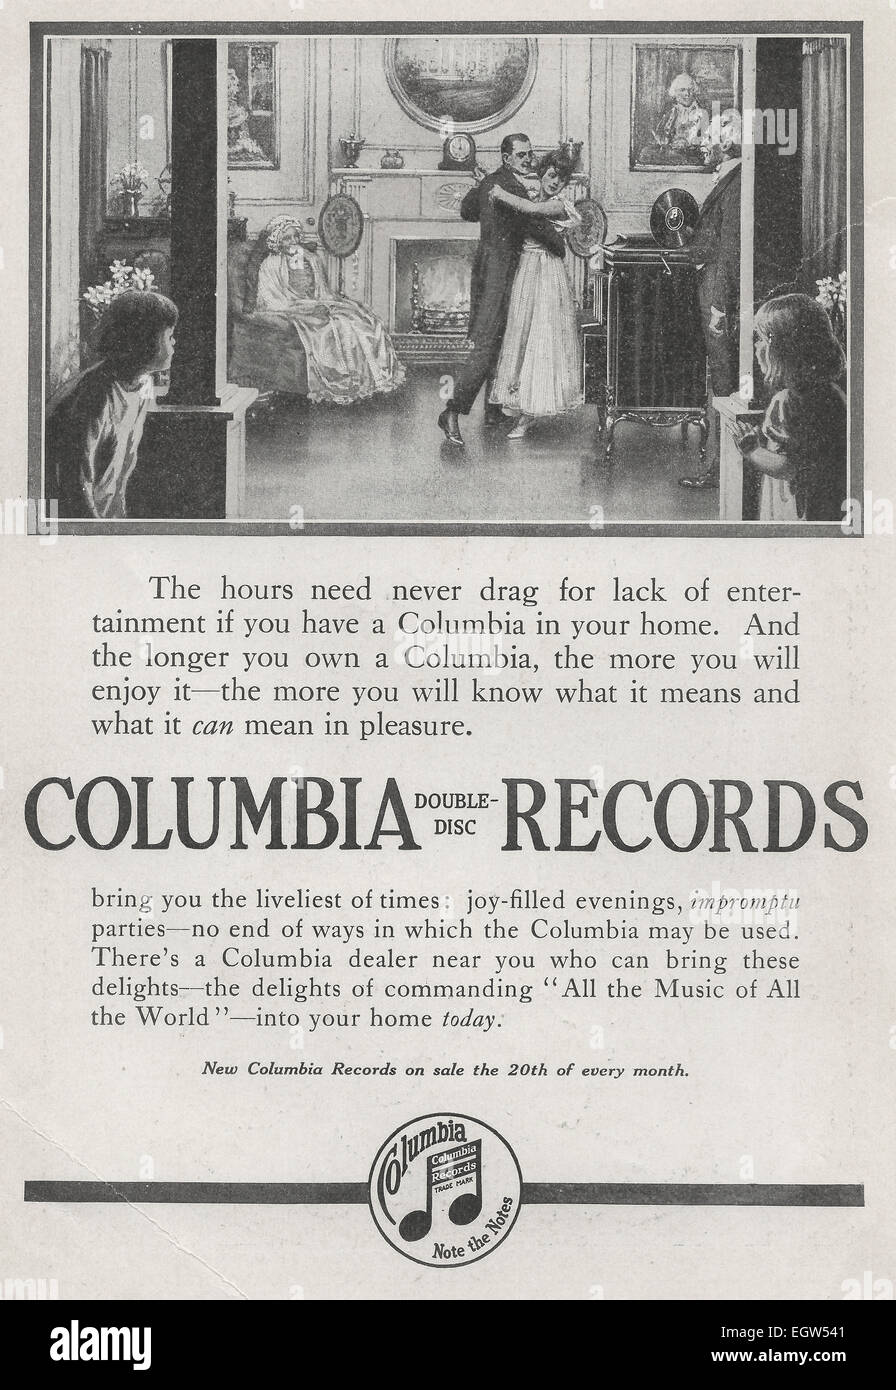 Vintage 1940s Colombia Records Composer Ad